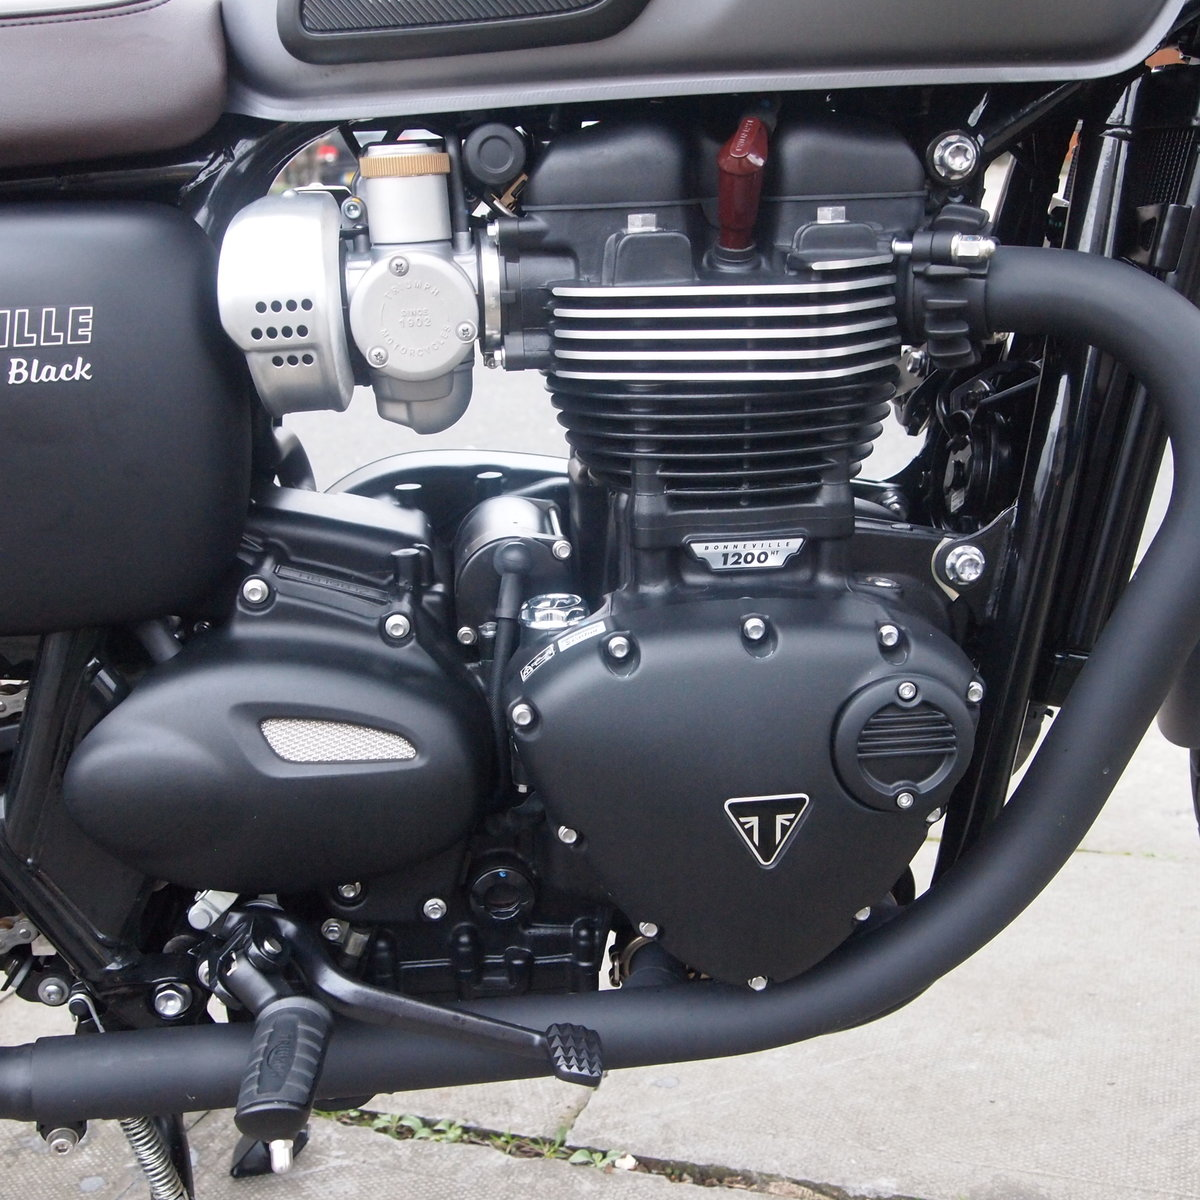 2017  T120 Bonneville 1200cc New Version In As New Condition. SOLD (picture 2 of 6)